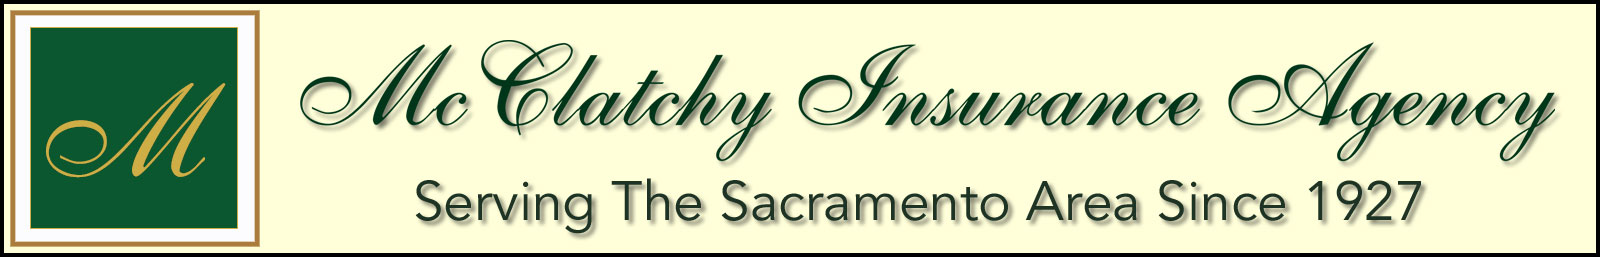 McClatchy Insurance Agency Sacramento